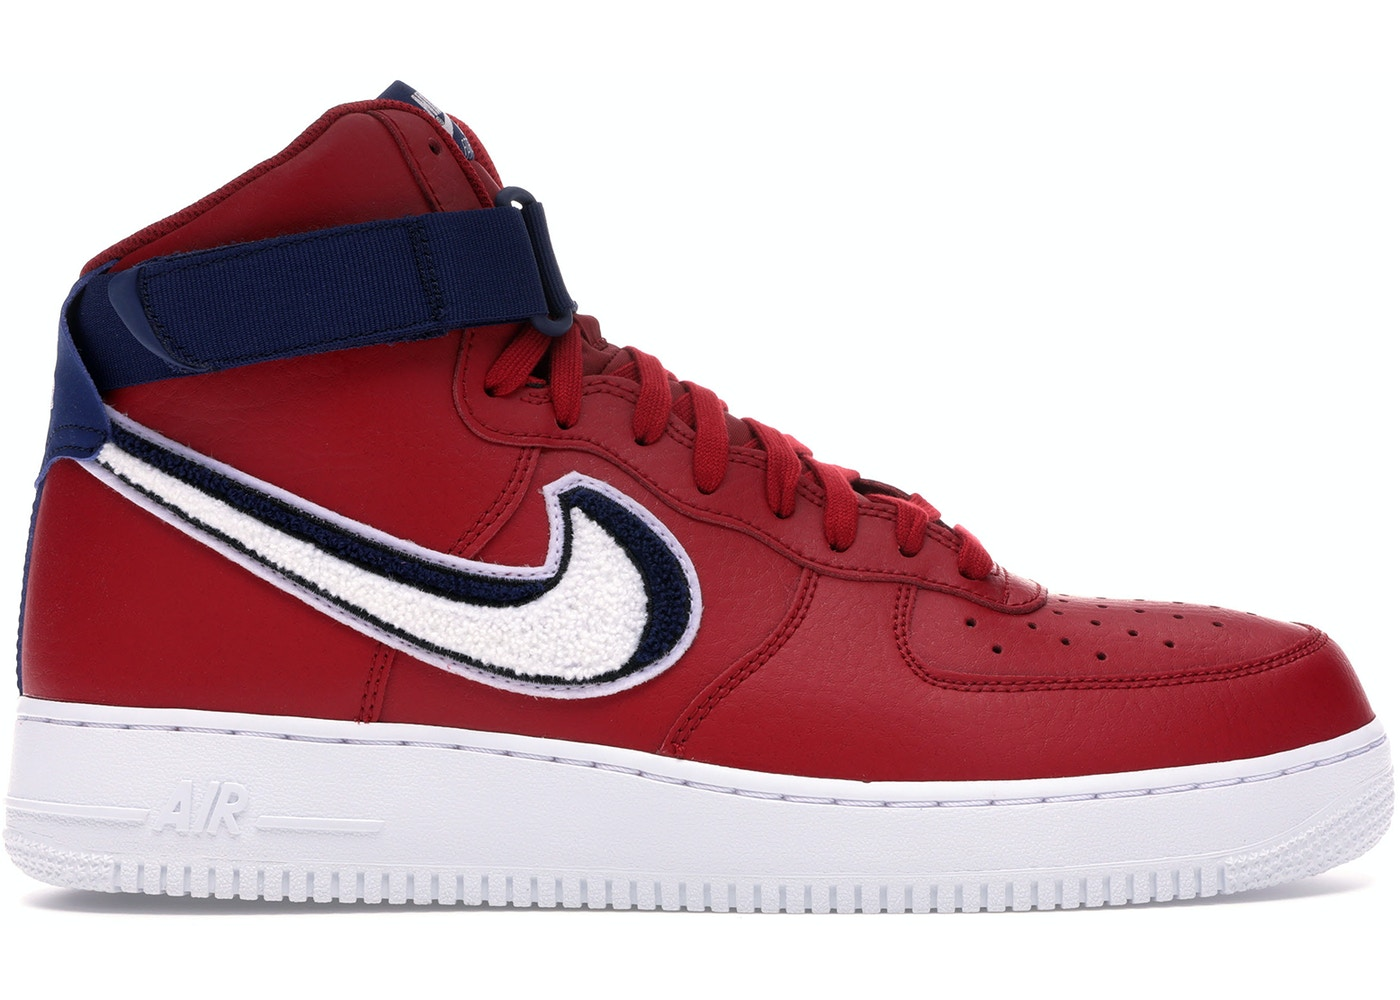 huge selection of 49167 614c5 Air Force 1 High 3D Chenille Swoosh Red White Blue